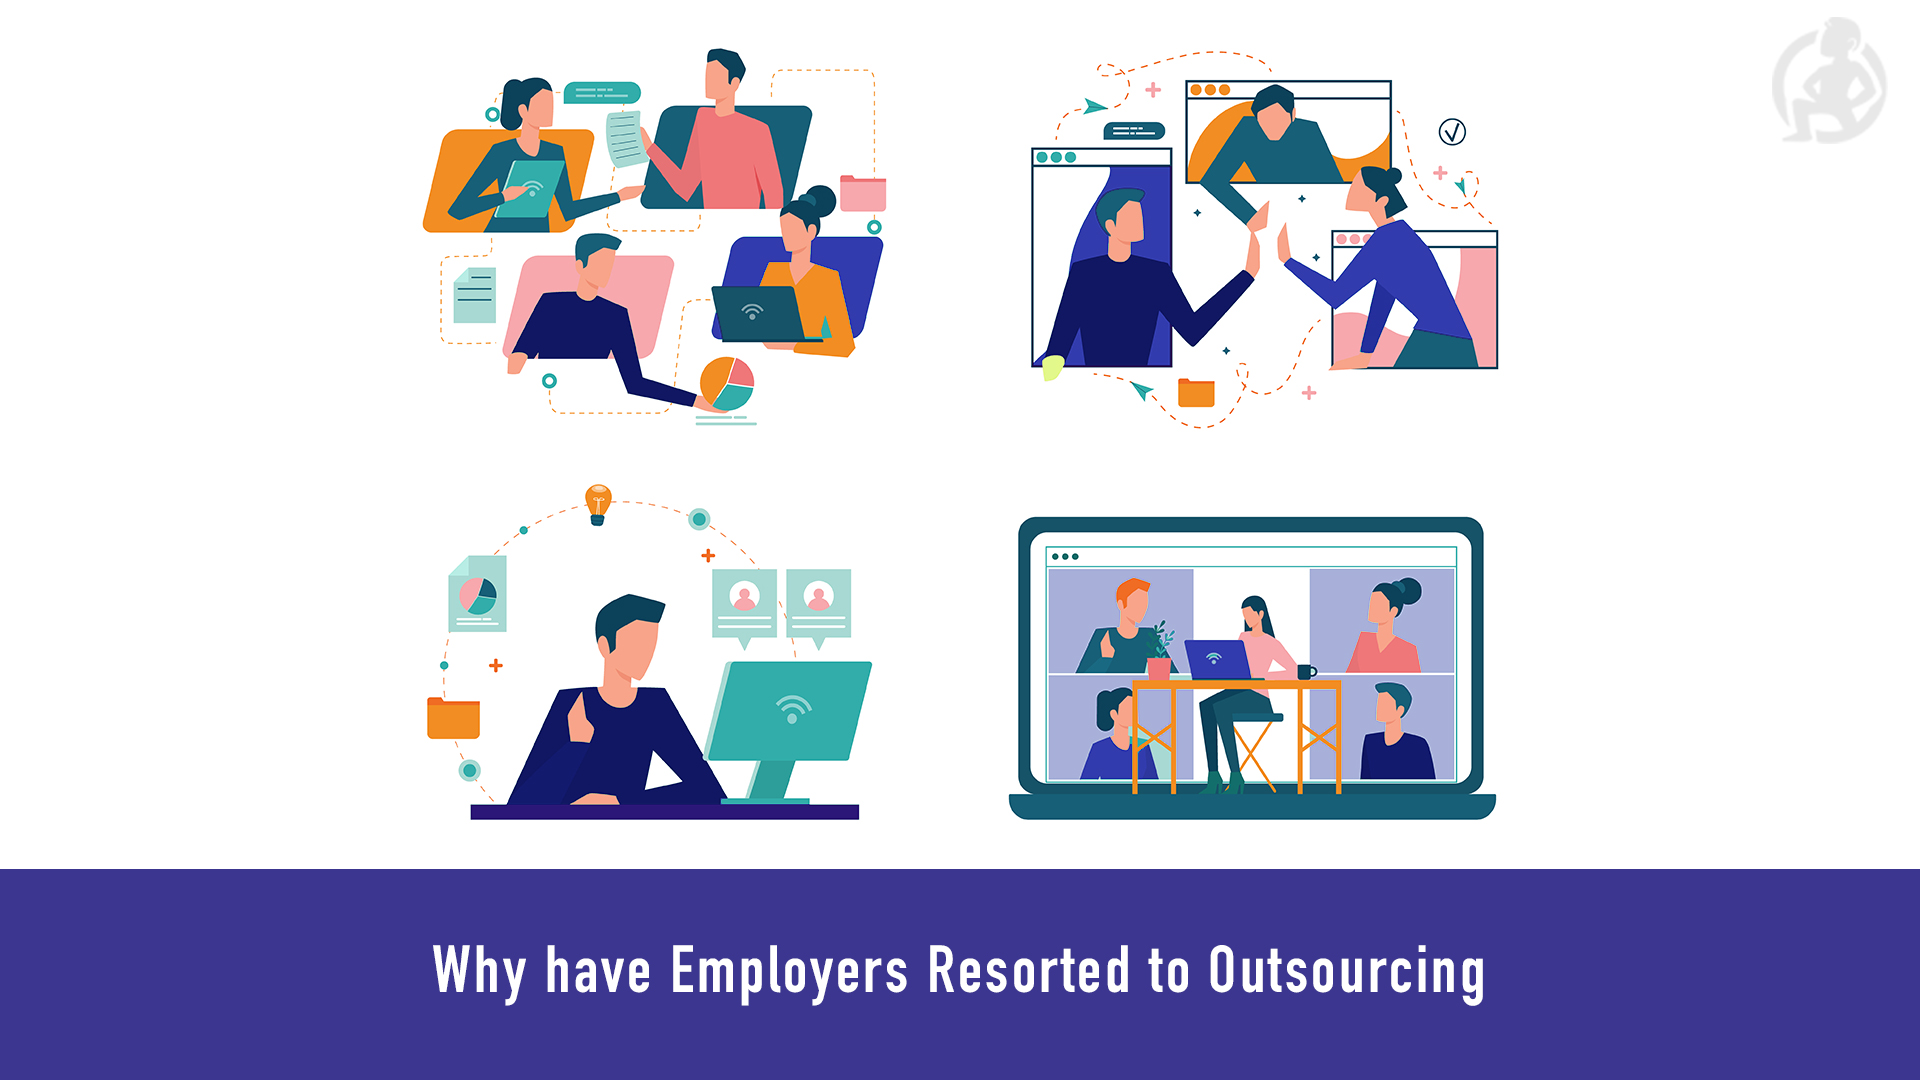 425 Why have Employers Resorted to Outsourcing FEAT